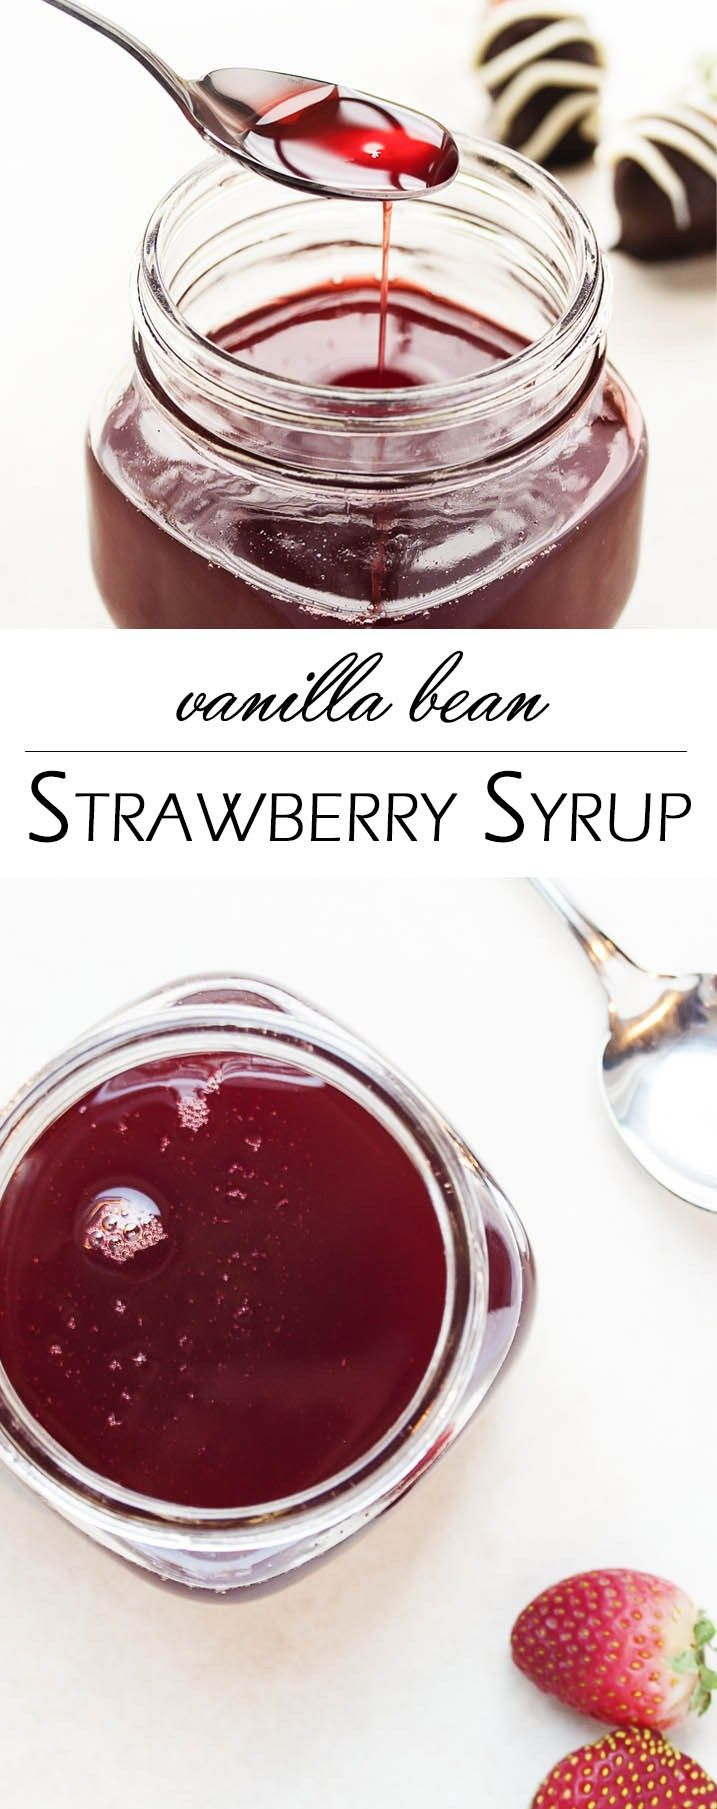 Strawberry Vanilla Bean Syrup - This strawberry vanilla syrup is full ...